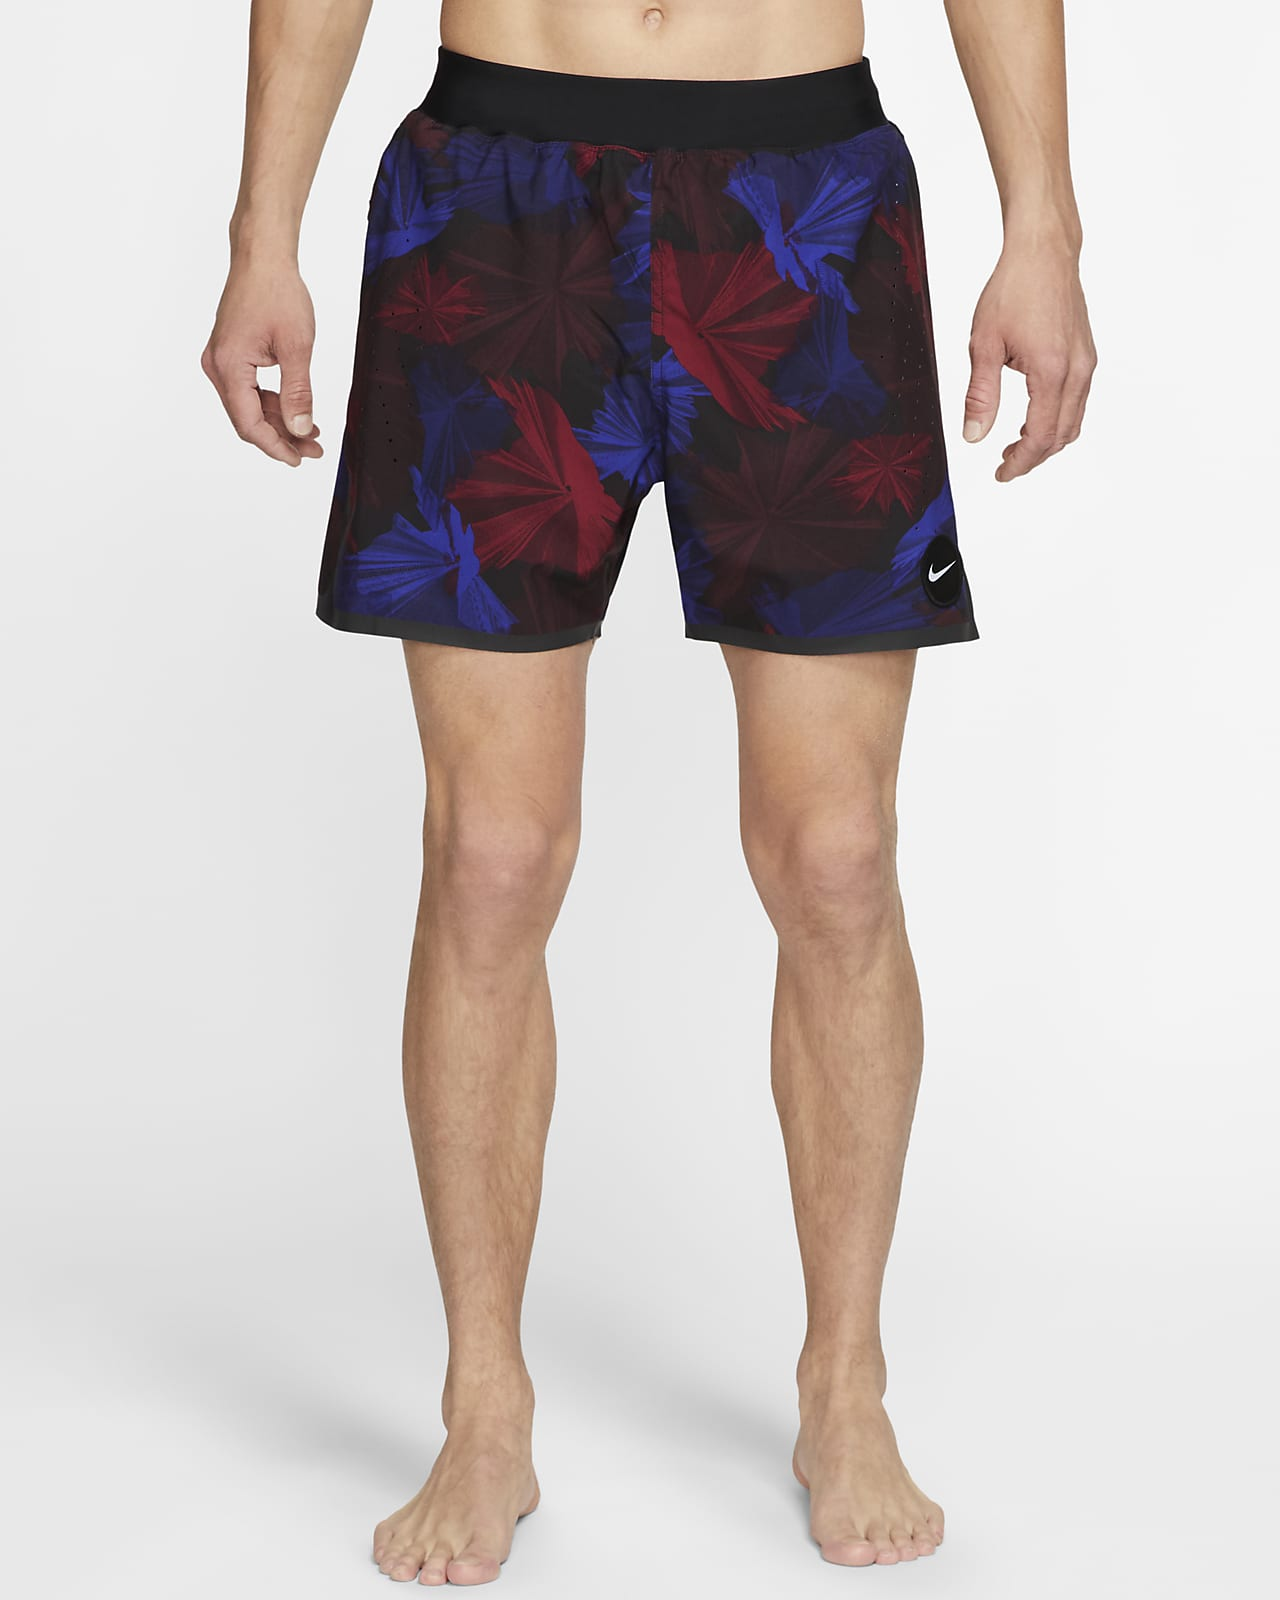 Short de volleyball Nike Global Camo Blade 12,5 cm pour Homme